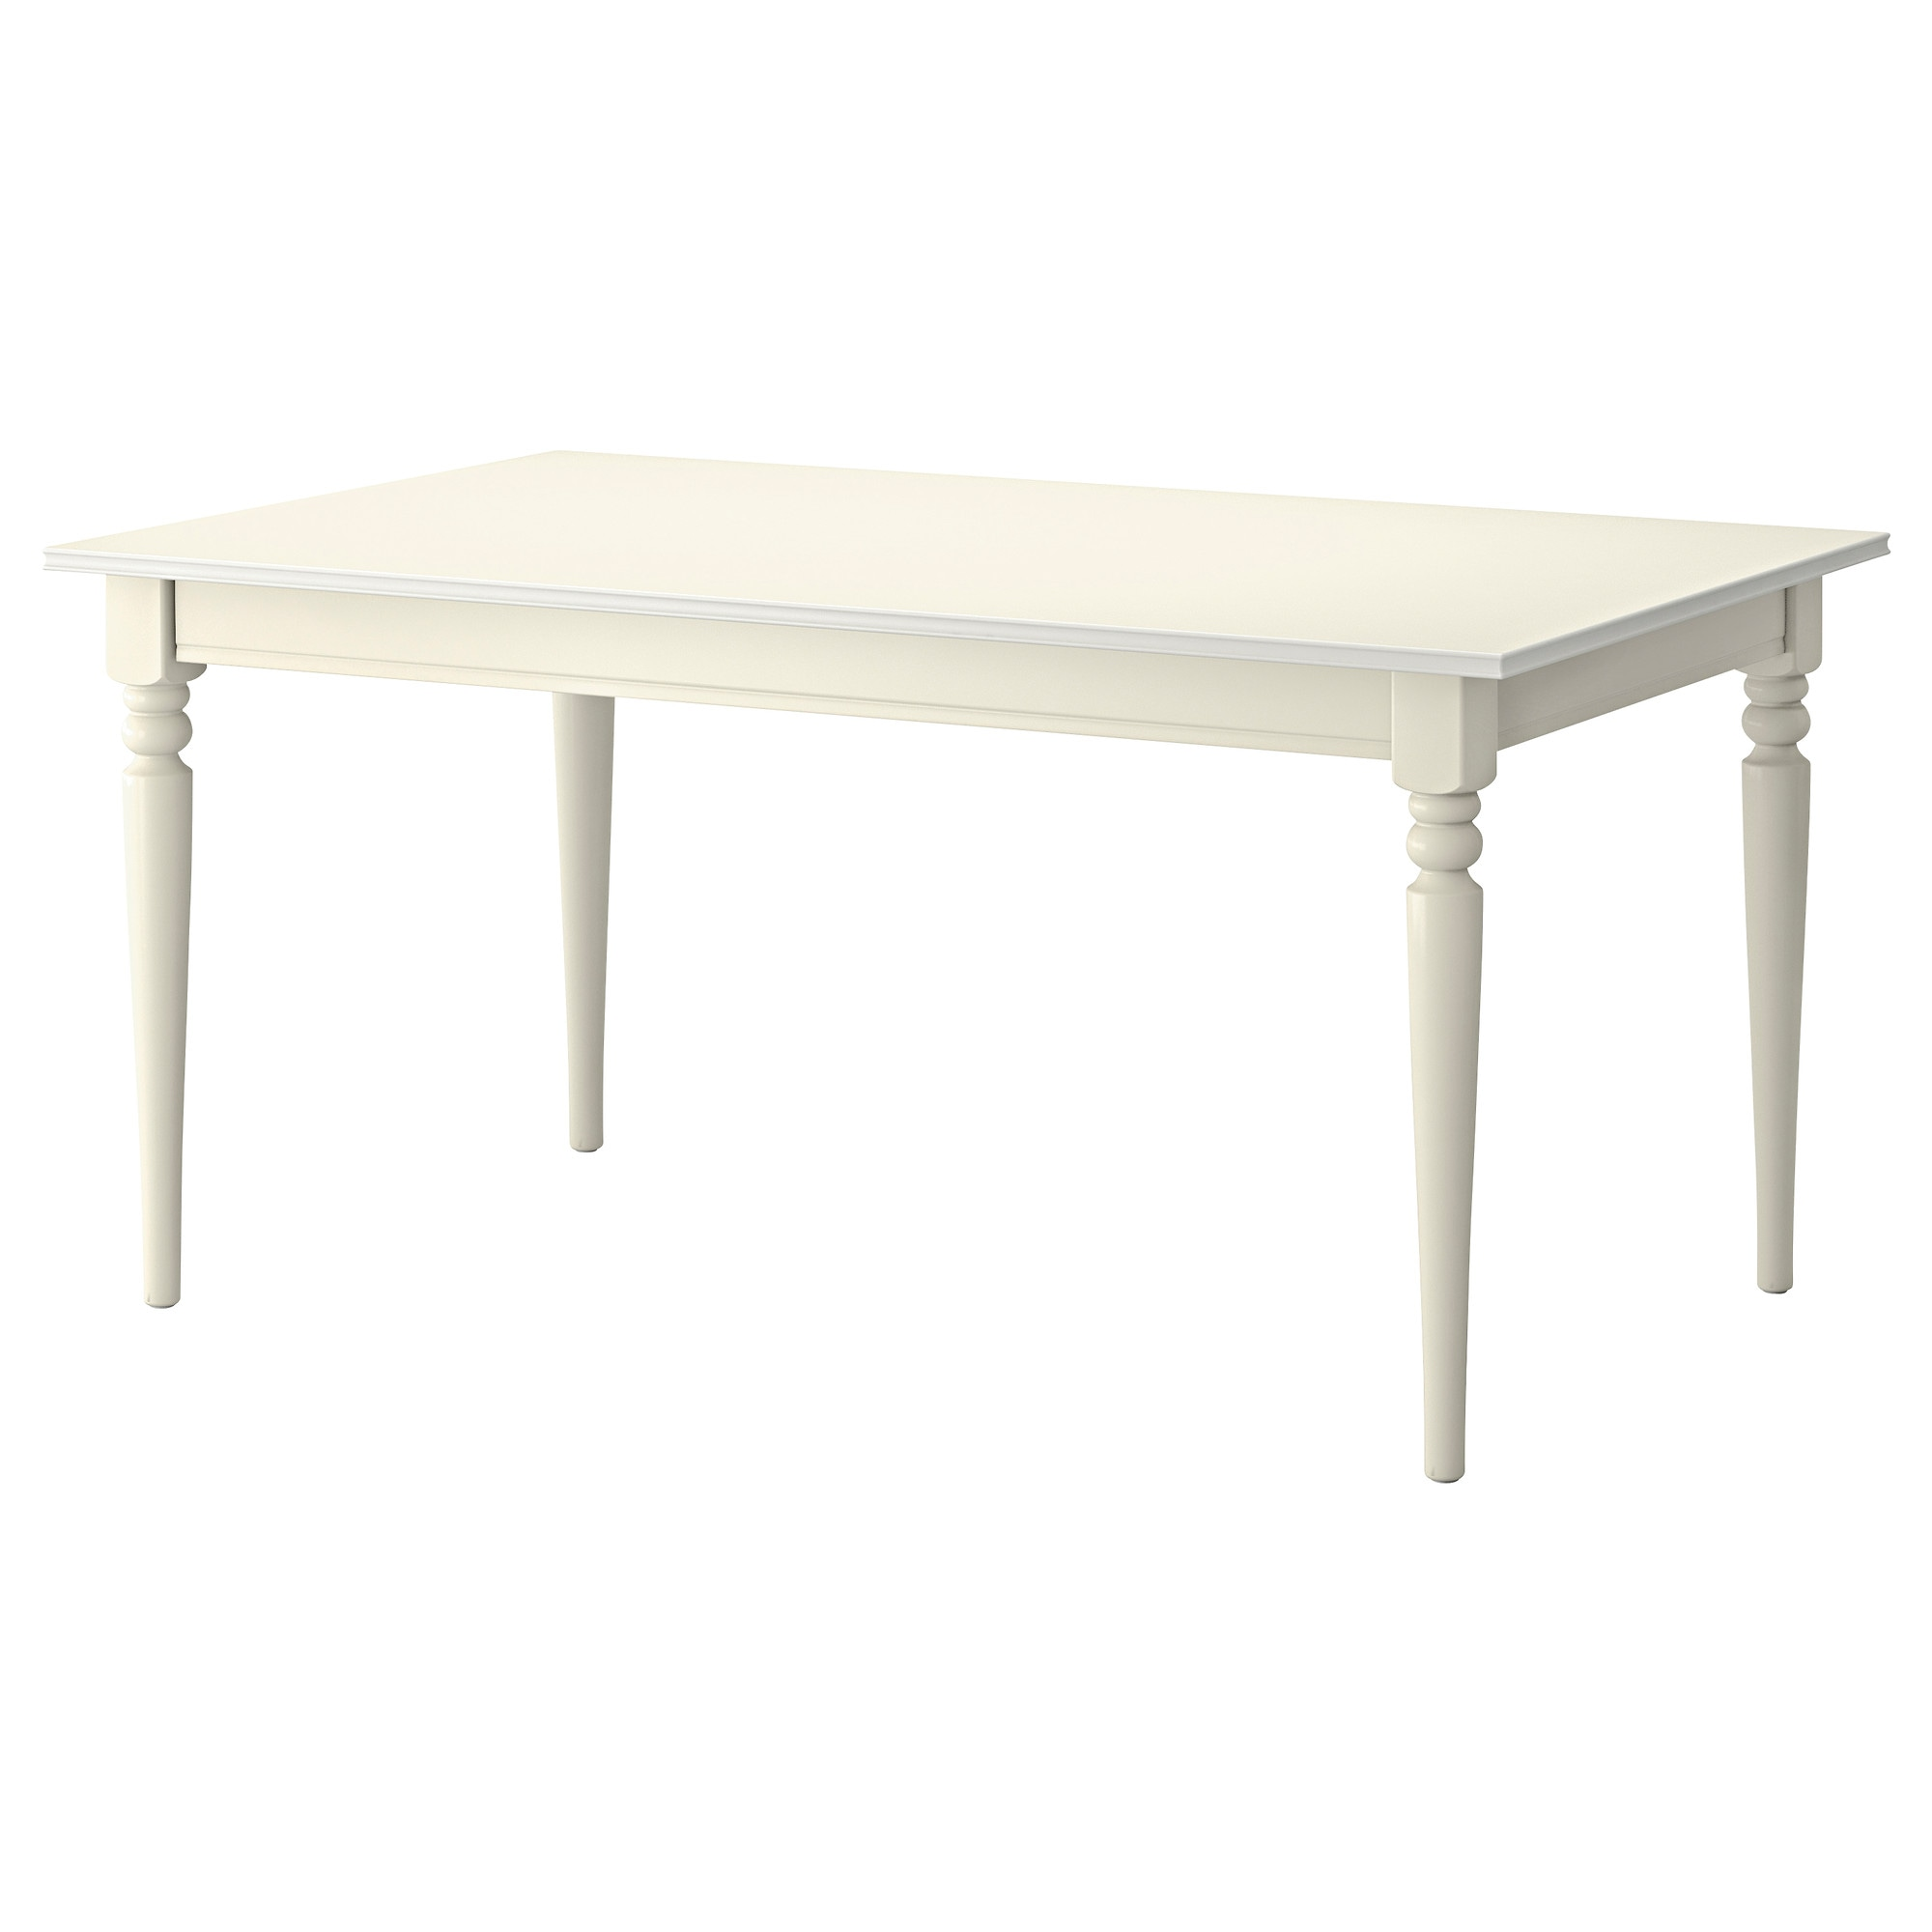 Attractive INGATORP Extendable Table   IKEA